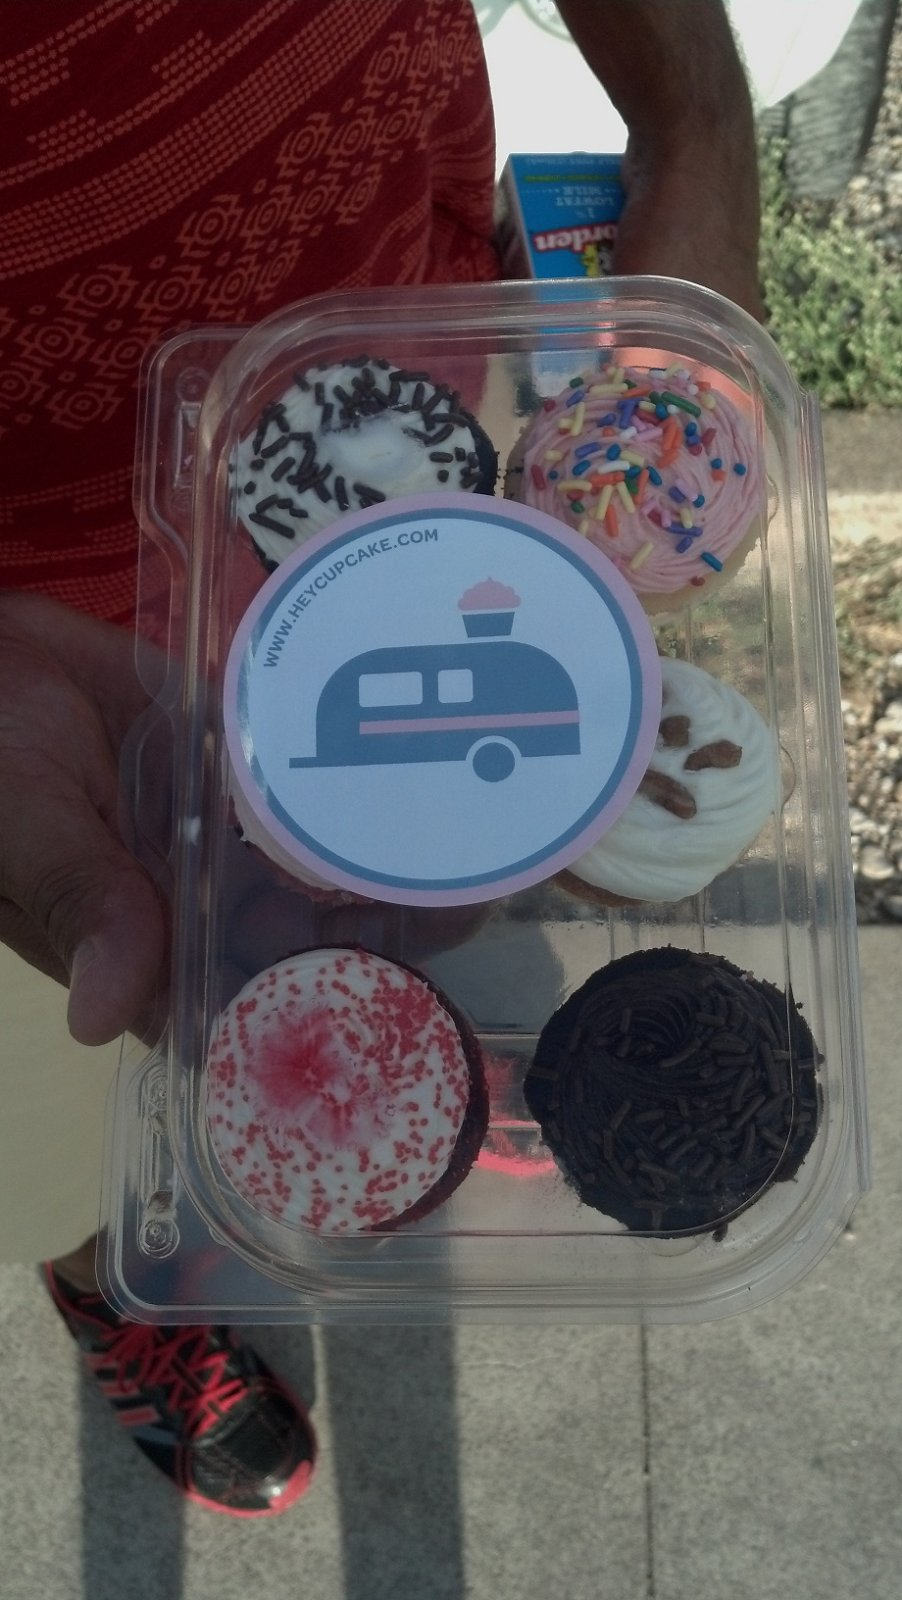 Click image for larger version  Name:Cupcakes from Hey Cupcake in Austin.jpg Views:100 Size:199.8 KB ID:192393